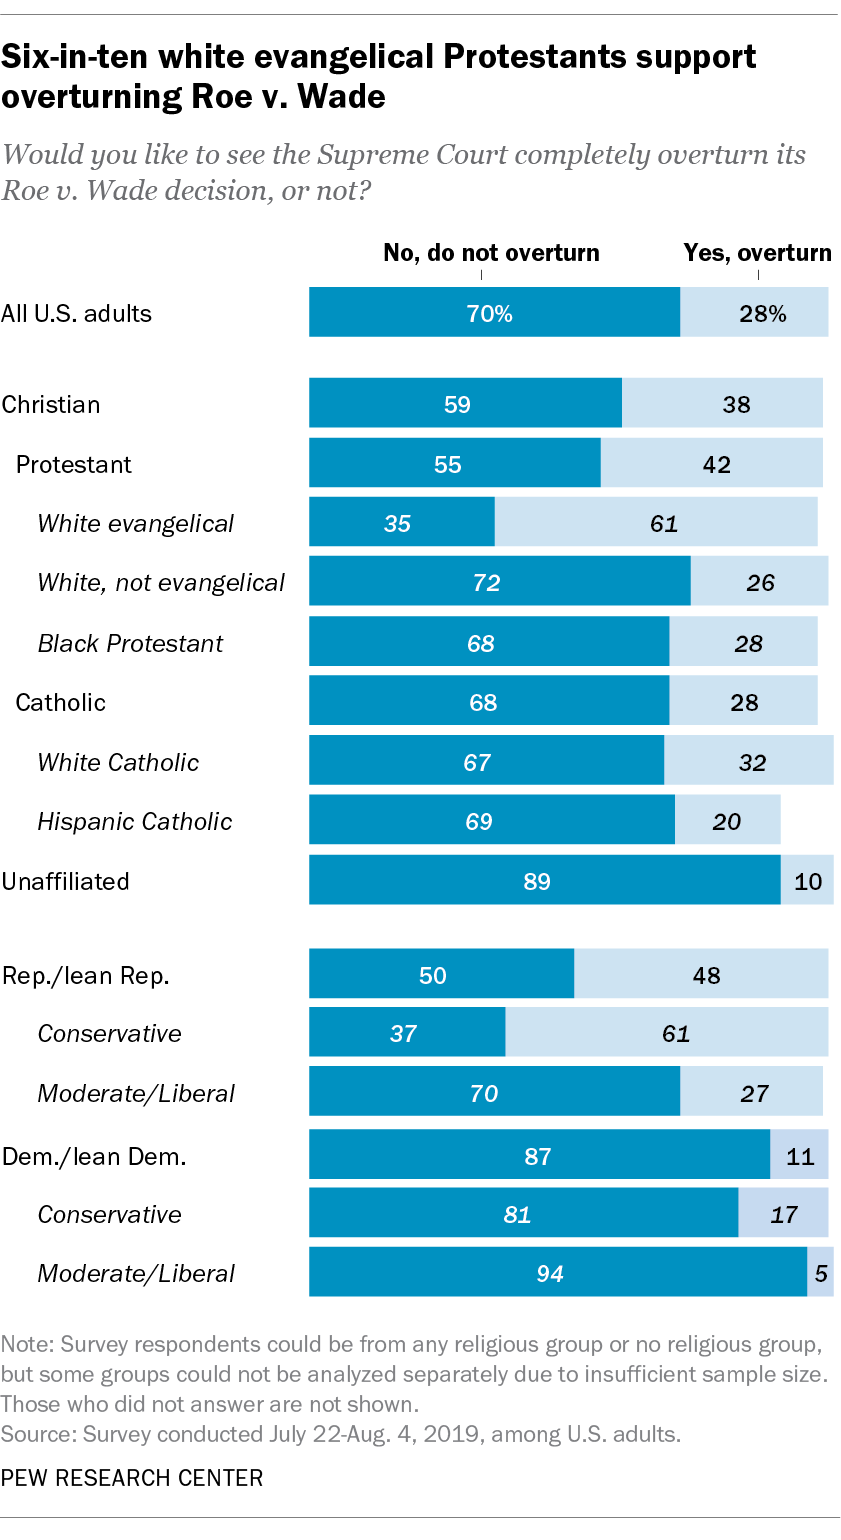 Six-in-ten white evangelical Protestants support overturning Roe v. Wade